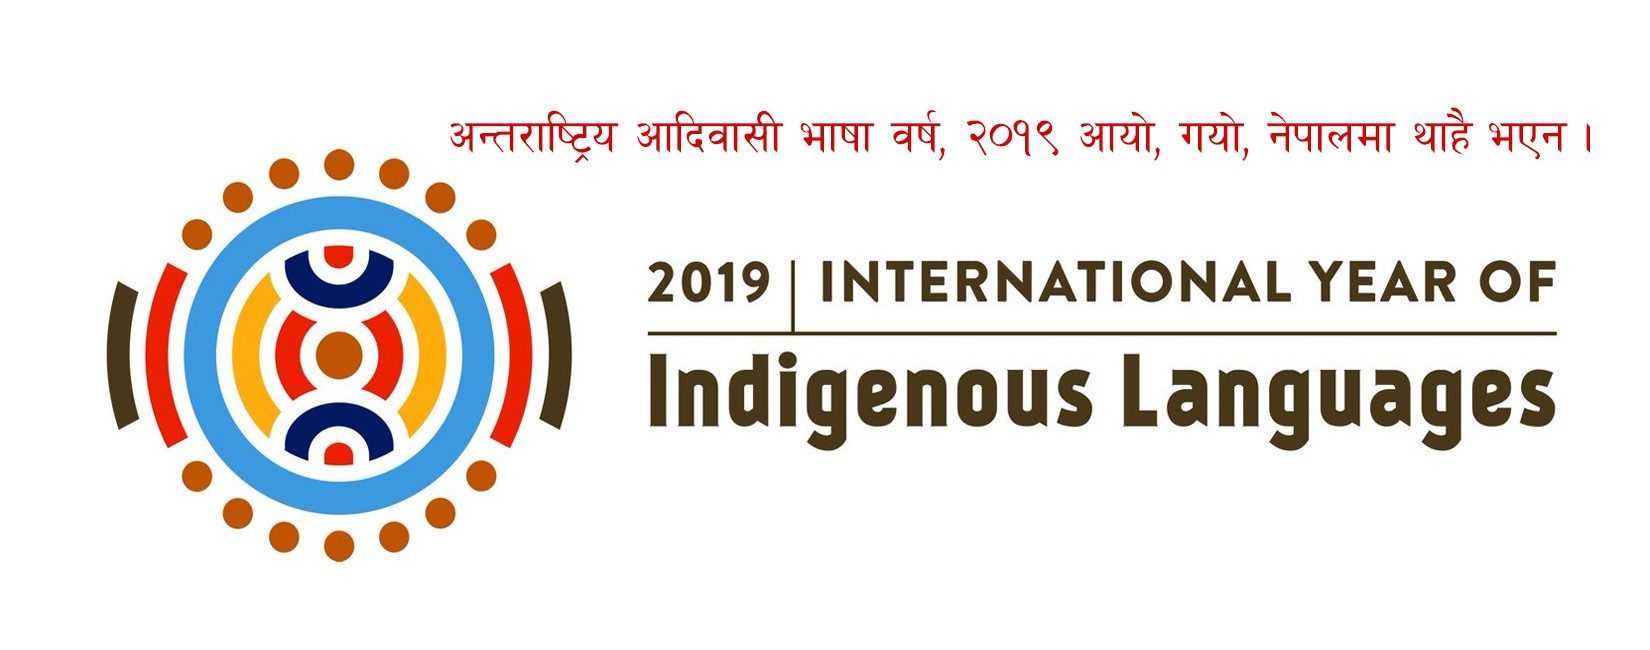 The indigenous language year 2019 came and went, no one noticed in Nepal